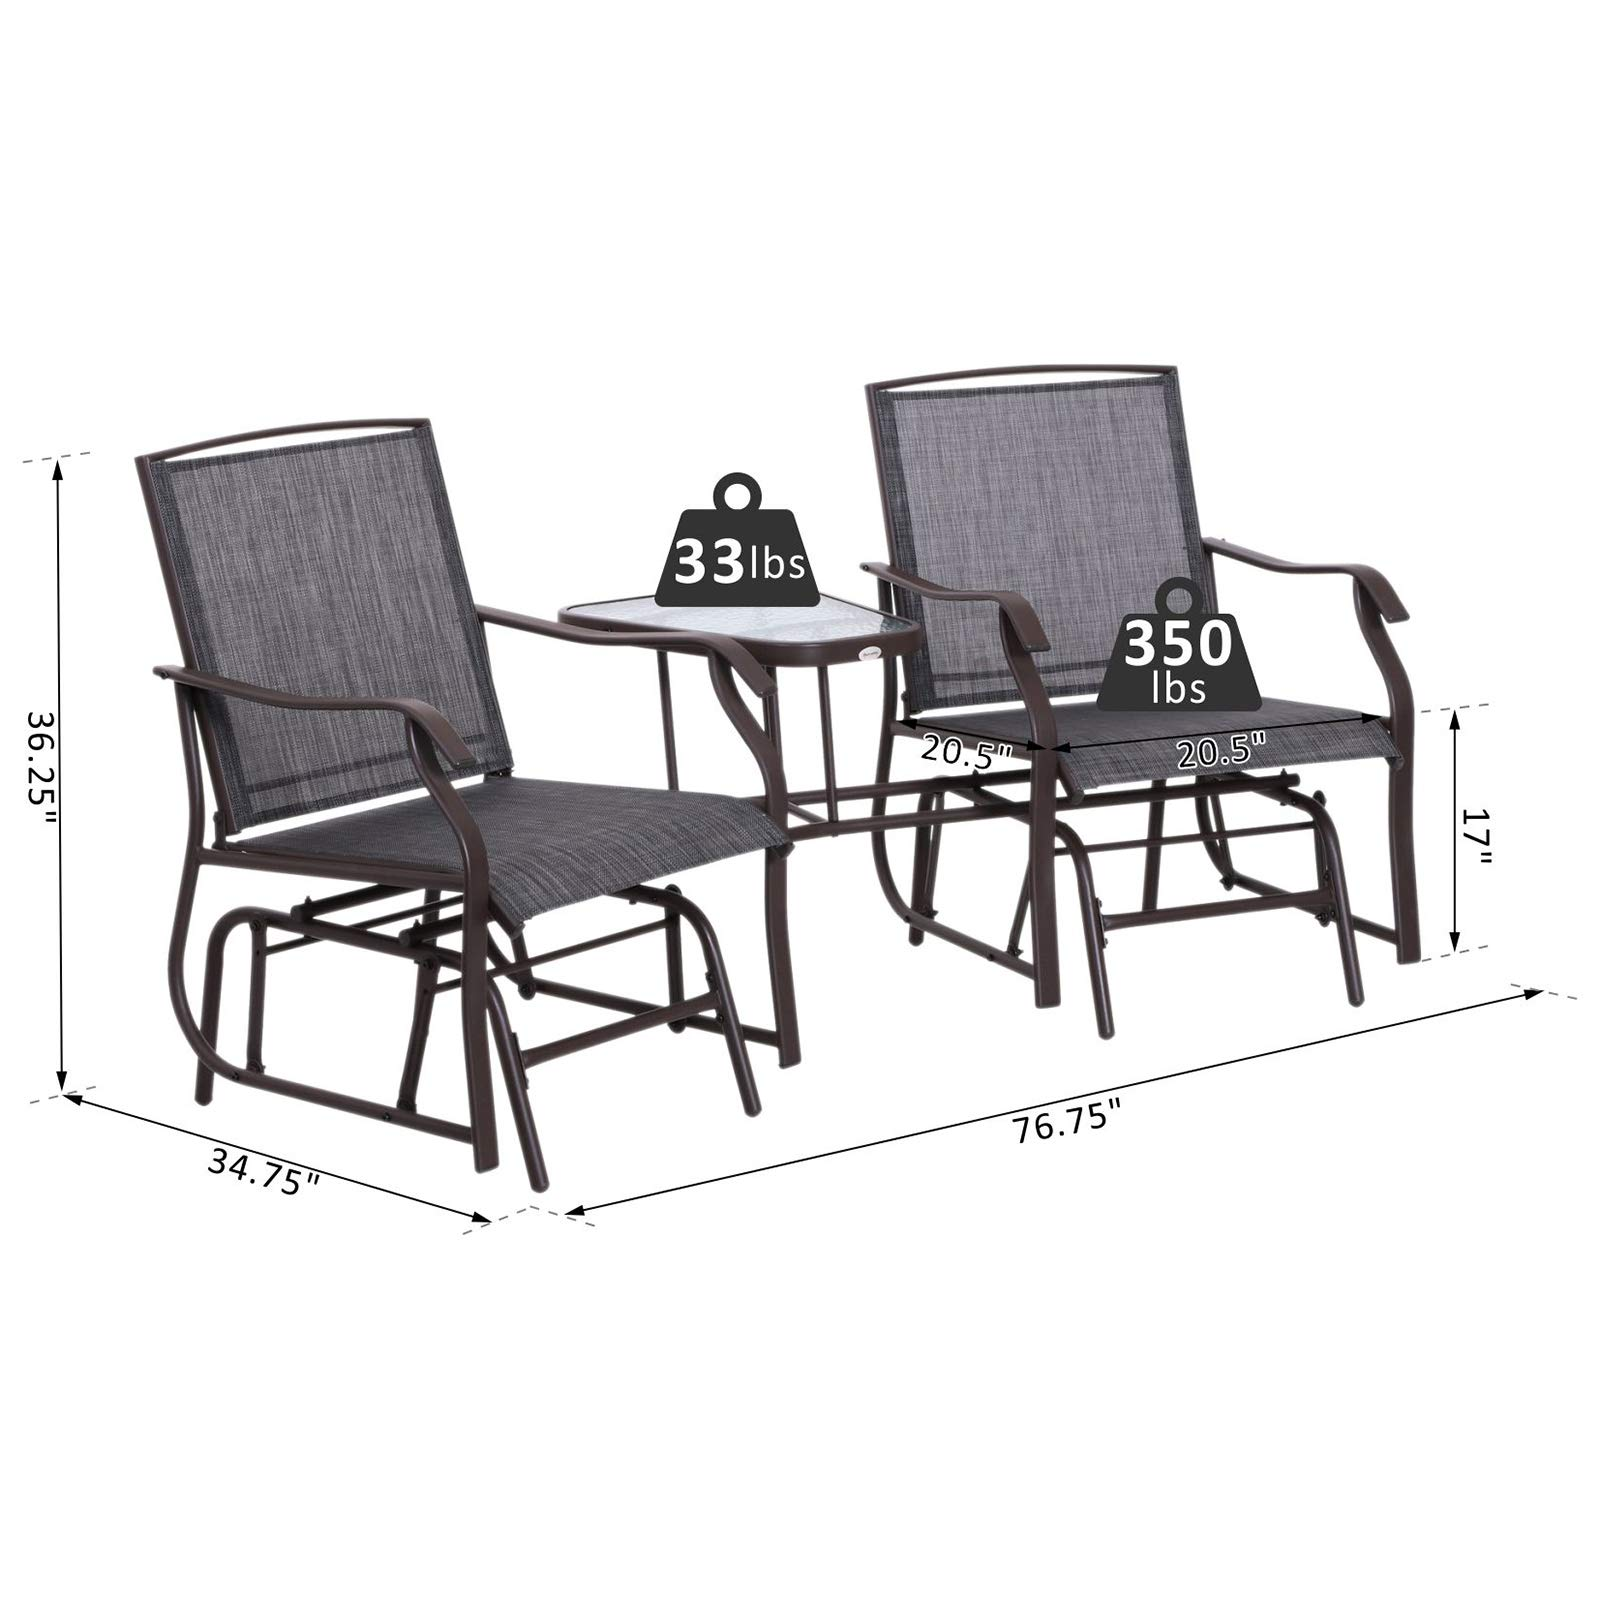 Outsunny 2 Person Outdoor Sling Fabric Double Glider Rocker Chair with Table by Outsunny (Image #7)